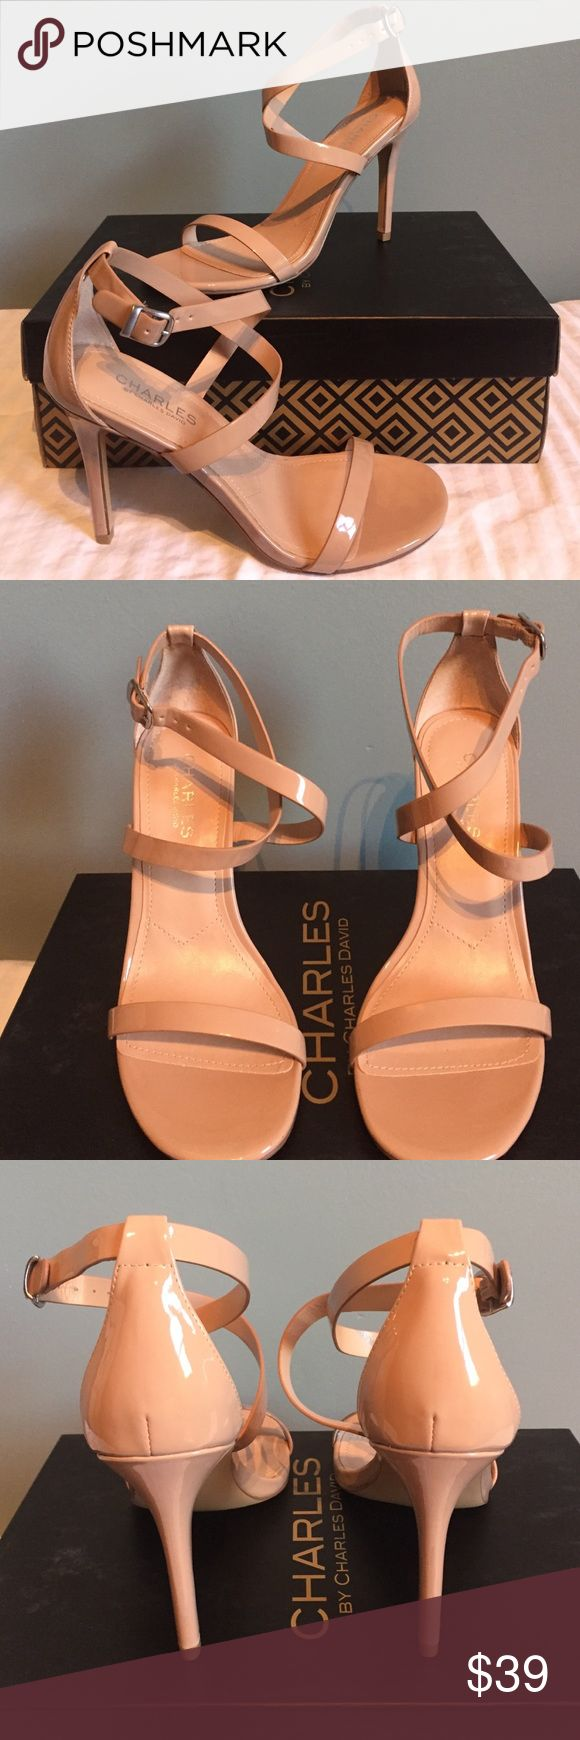 🎈NIB Charles by Charles David Nude Patent🎈 NIB.  This shoe will go with everything.  Thanks for looking! Charles David Shoes Heels